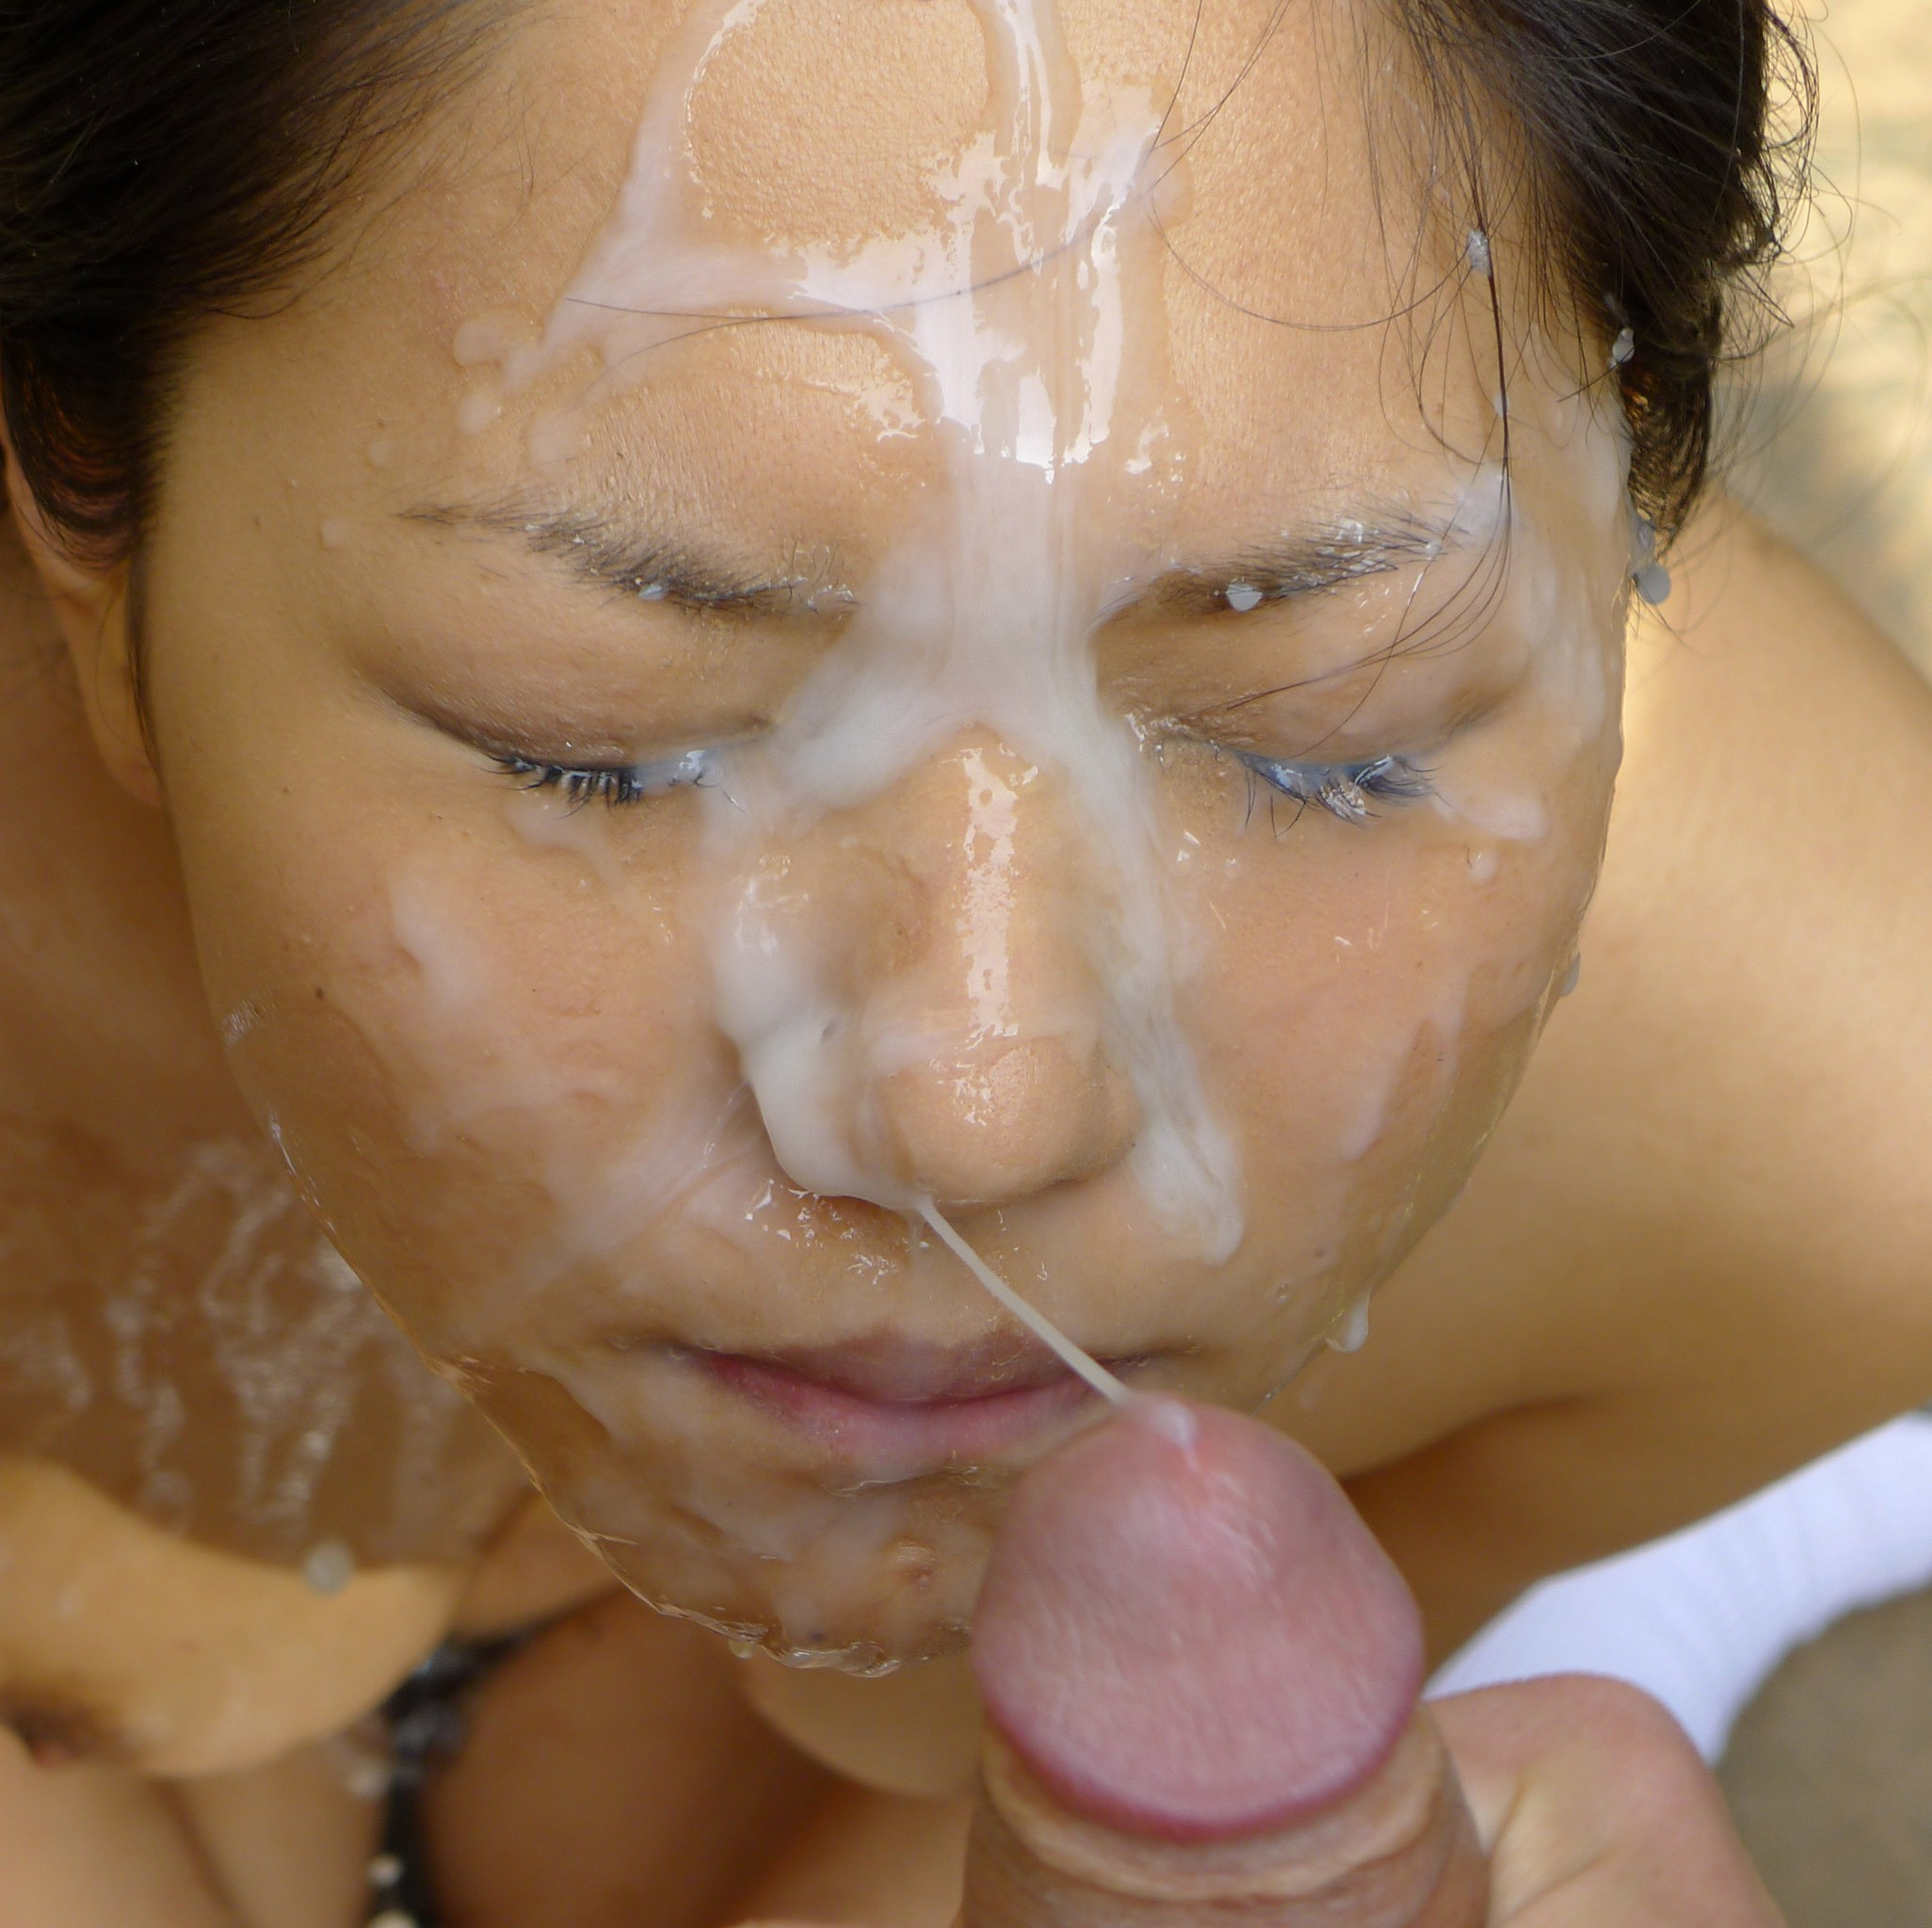 A huge facial and dried cum on shoes in this update 1